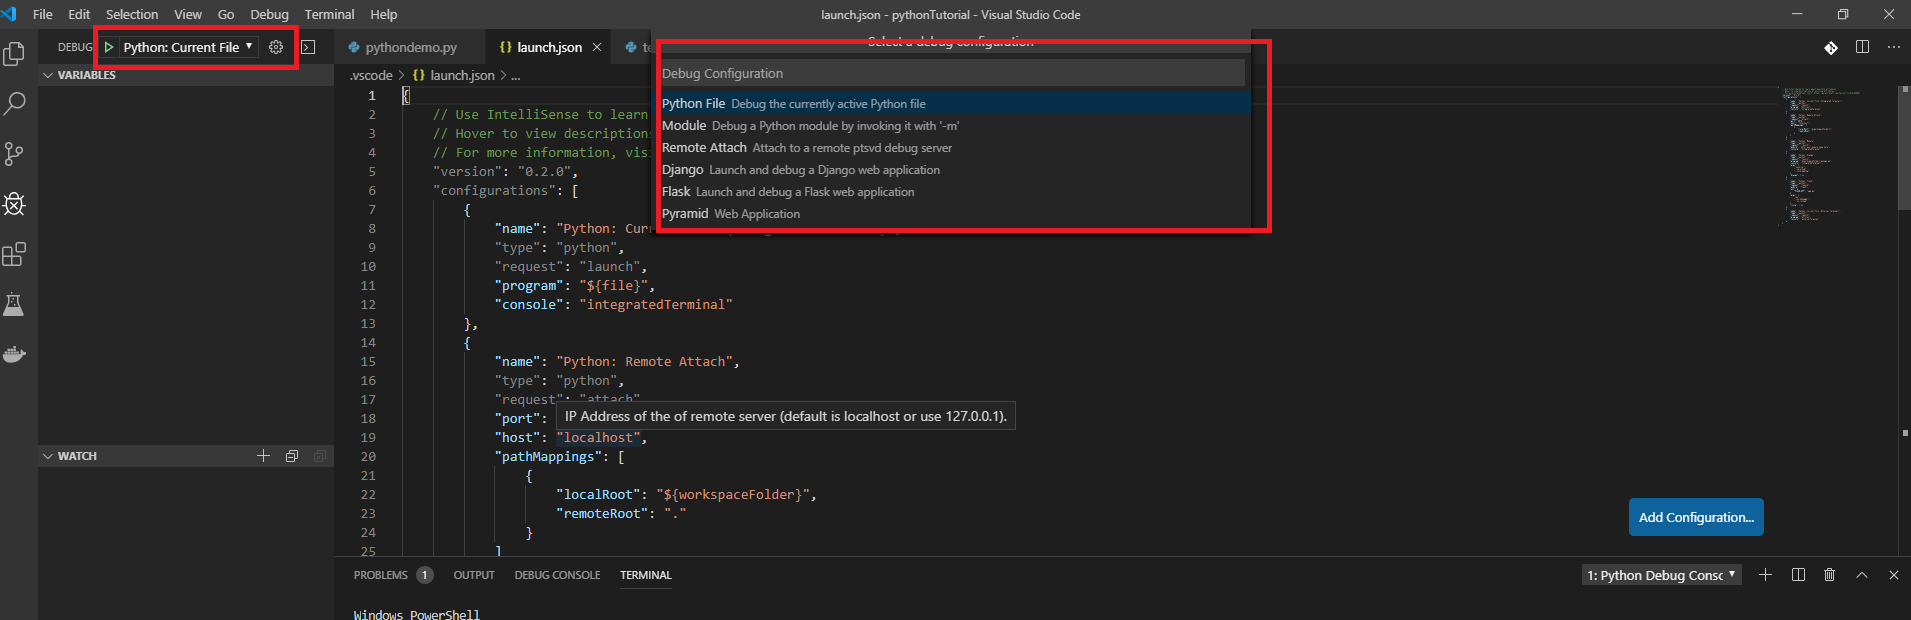 Configuring the debugger in VS Code